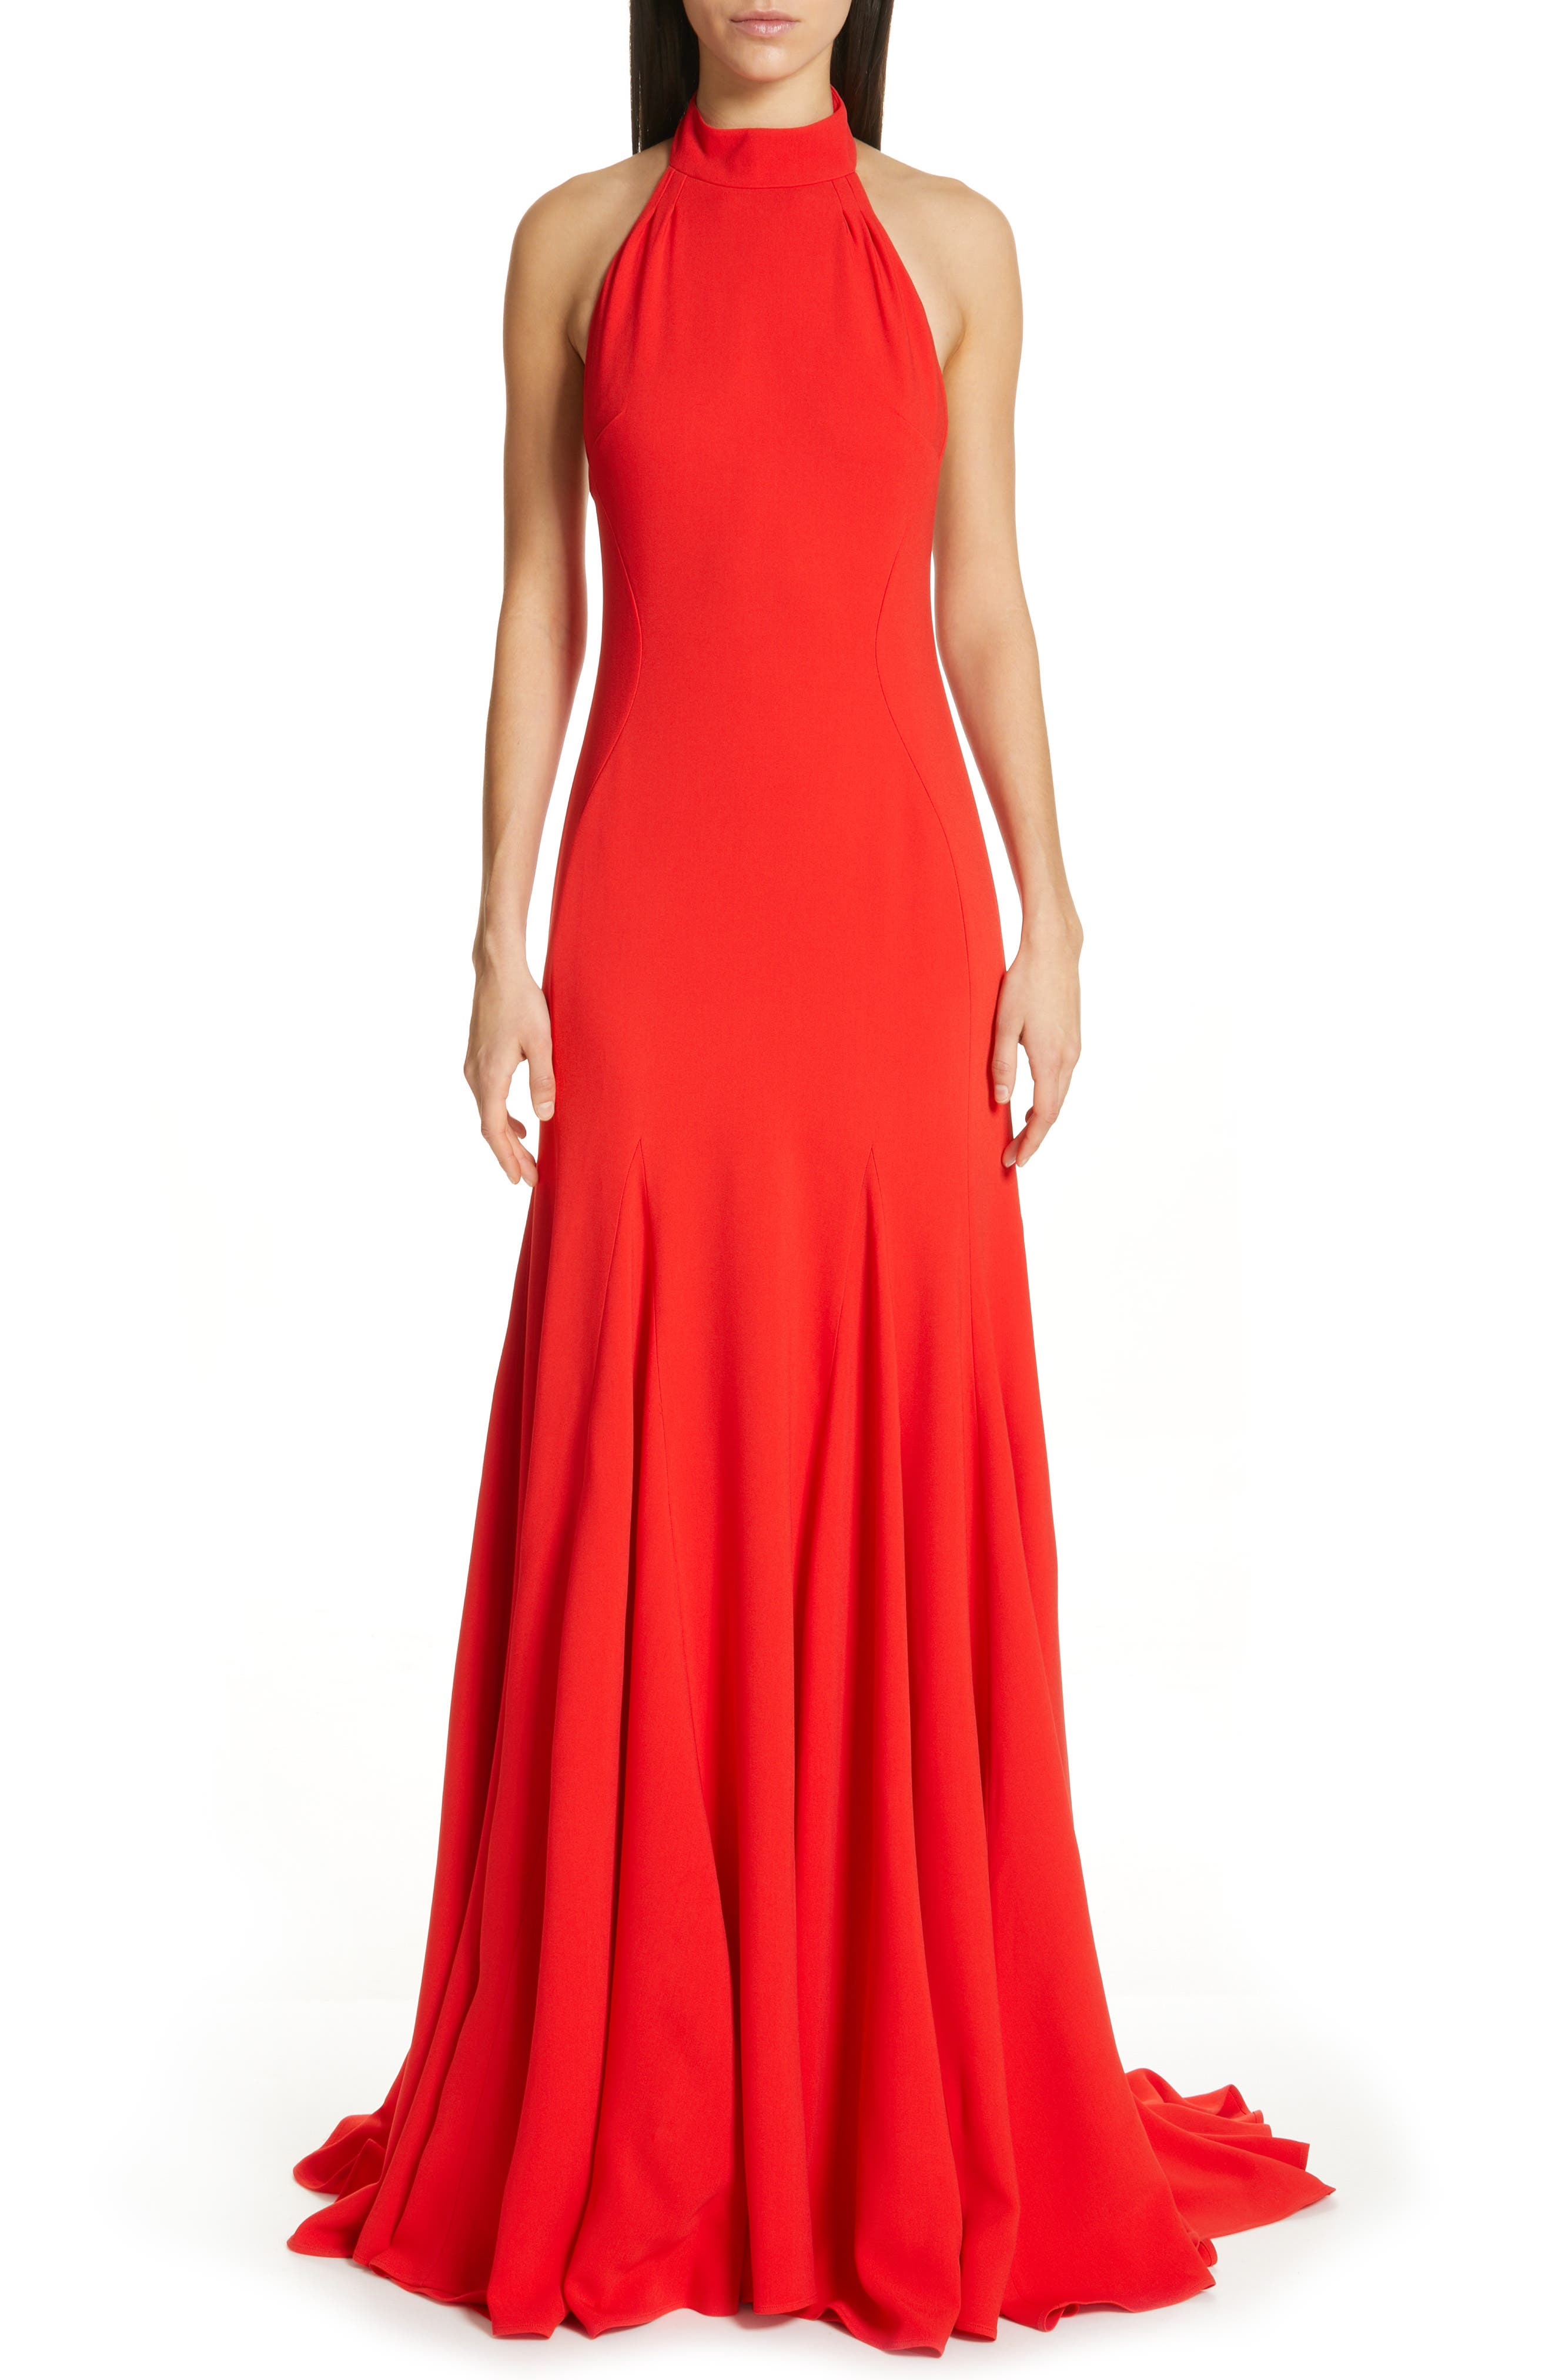 Stella Mccartney Magnolia Halter Trumpet Gown, 48 IT - Red